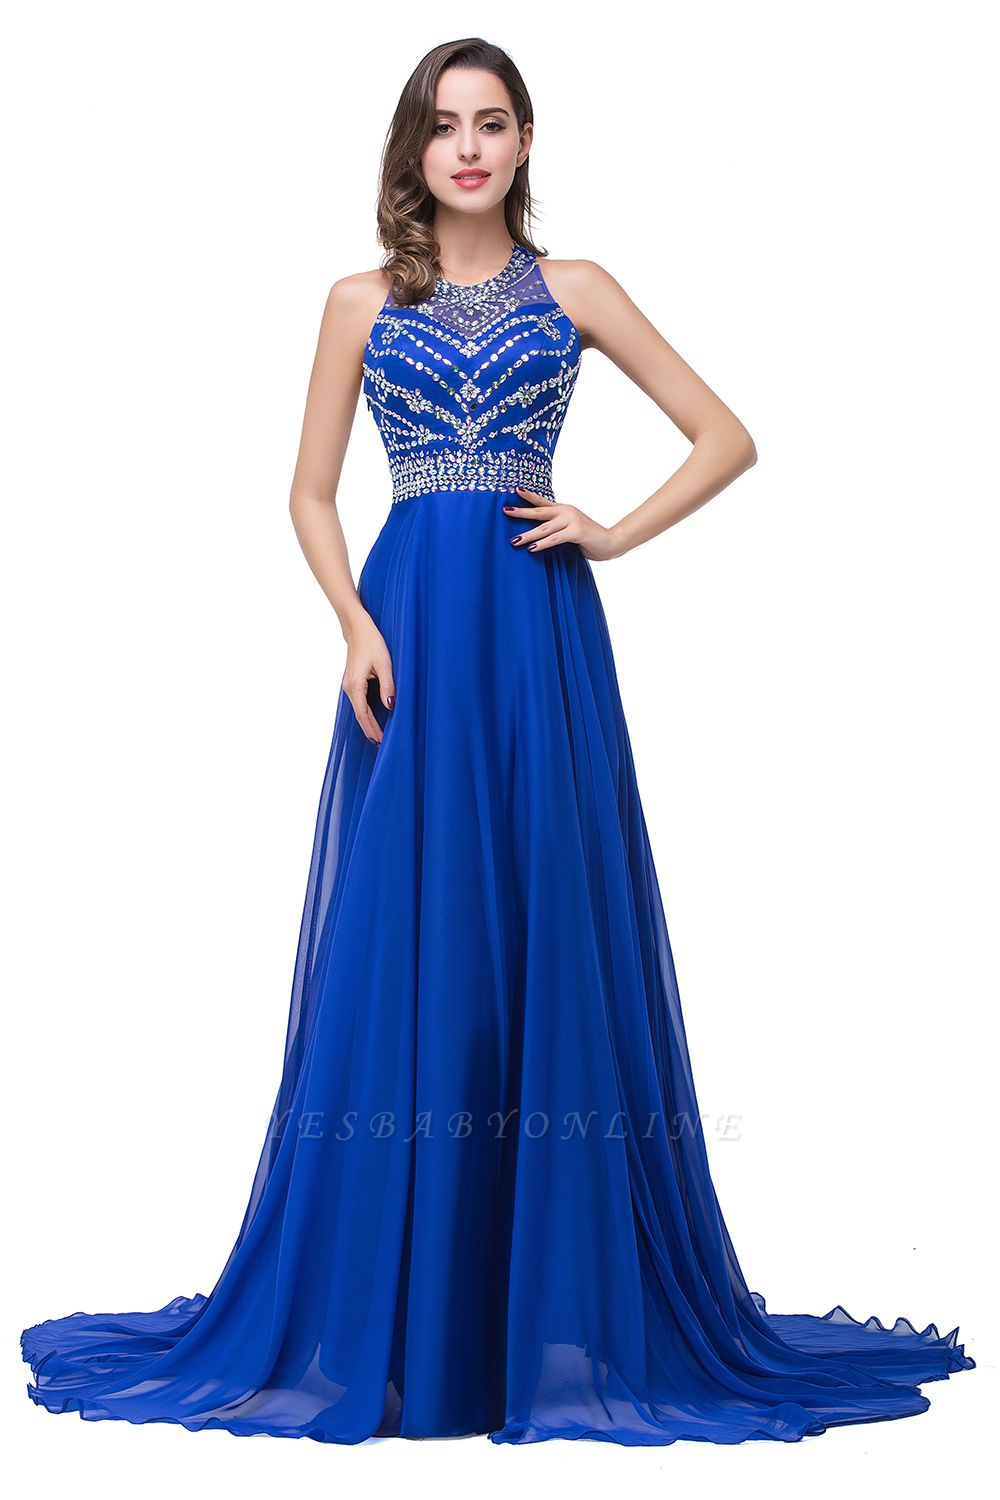 ELLA | A-line Crew Floor-length Sleeveless Tulle Prom Dresses with Crystal Beads